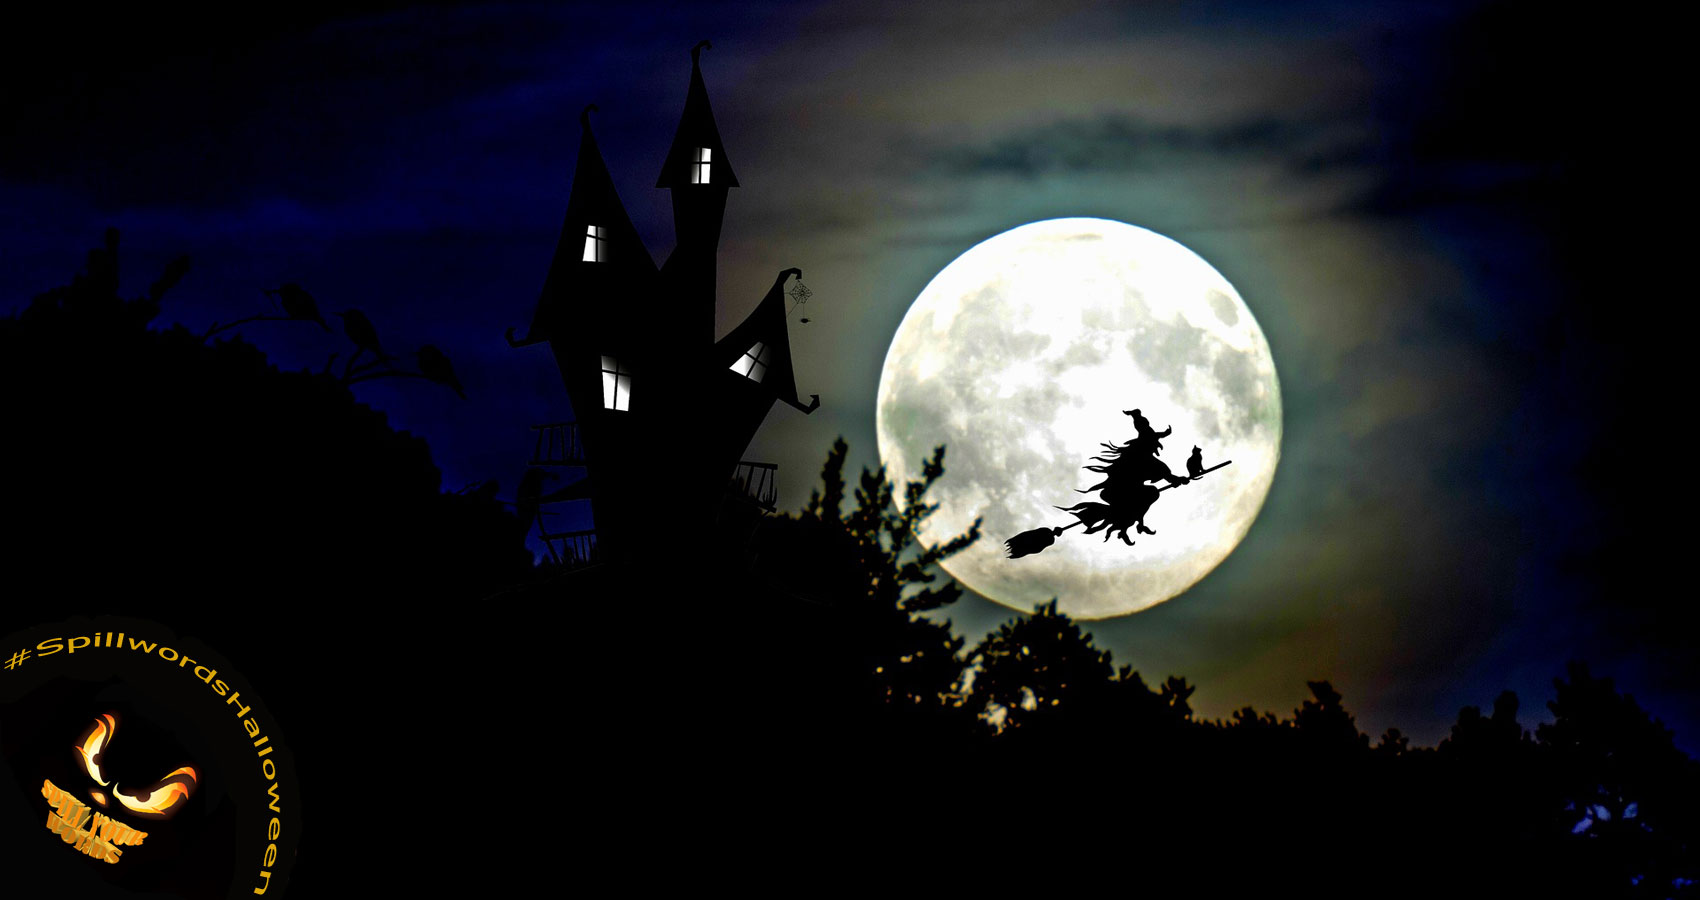 October's Halloween Night by Soulla Christodoulou at Spillwords.com